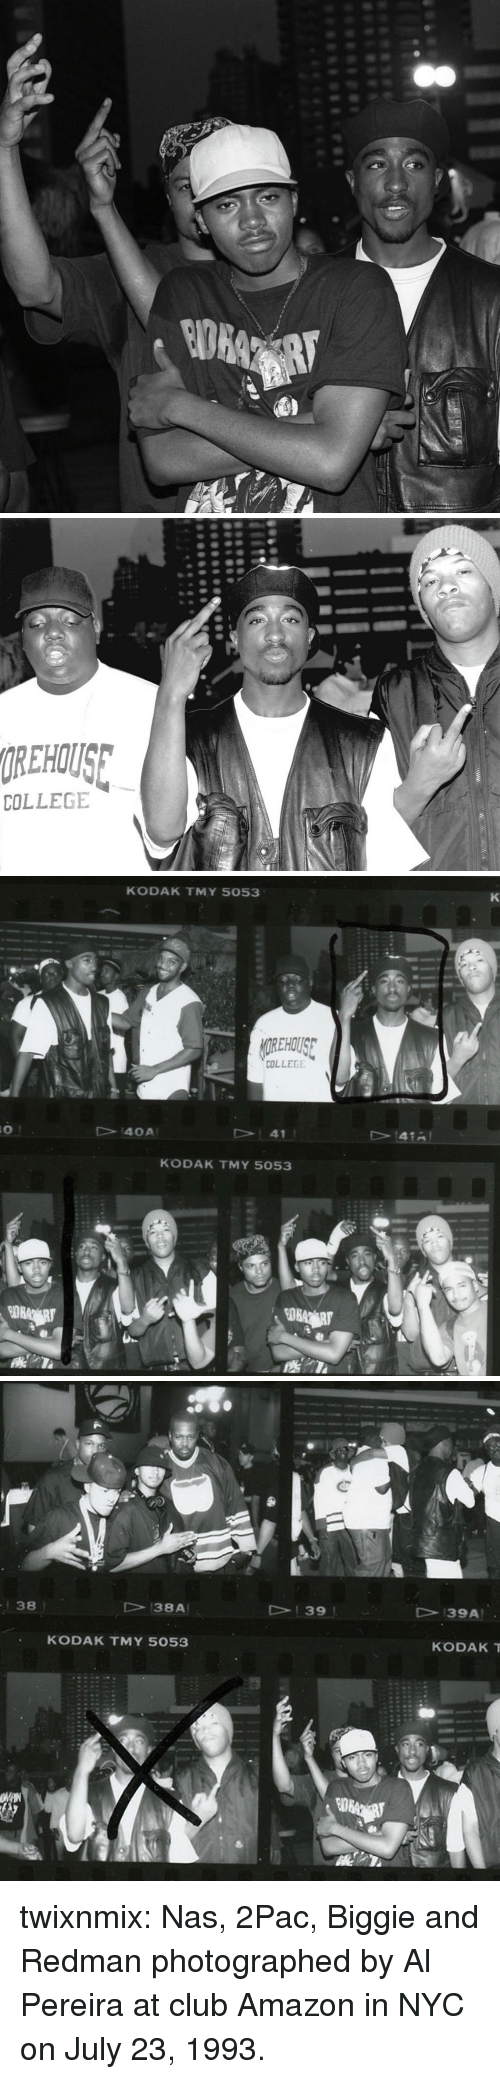 Amazon, Club, and College: REHOUS  COLLEGE   KODAK TMY 5053  OREHOUSE  COLLEGE  2  14OA  41  KODAK TMY 5053   38  138A  39  39A  KODAK TMY 5053  KODAKT twixnmix:  Nas, 2Pac, Biggie and Redman photographed by Al Pereira   at club Amazon in NYC on July 23, 1993.